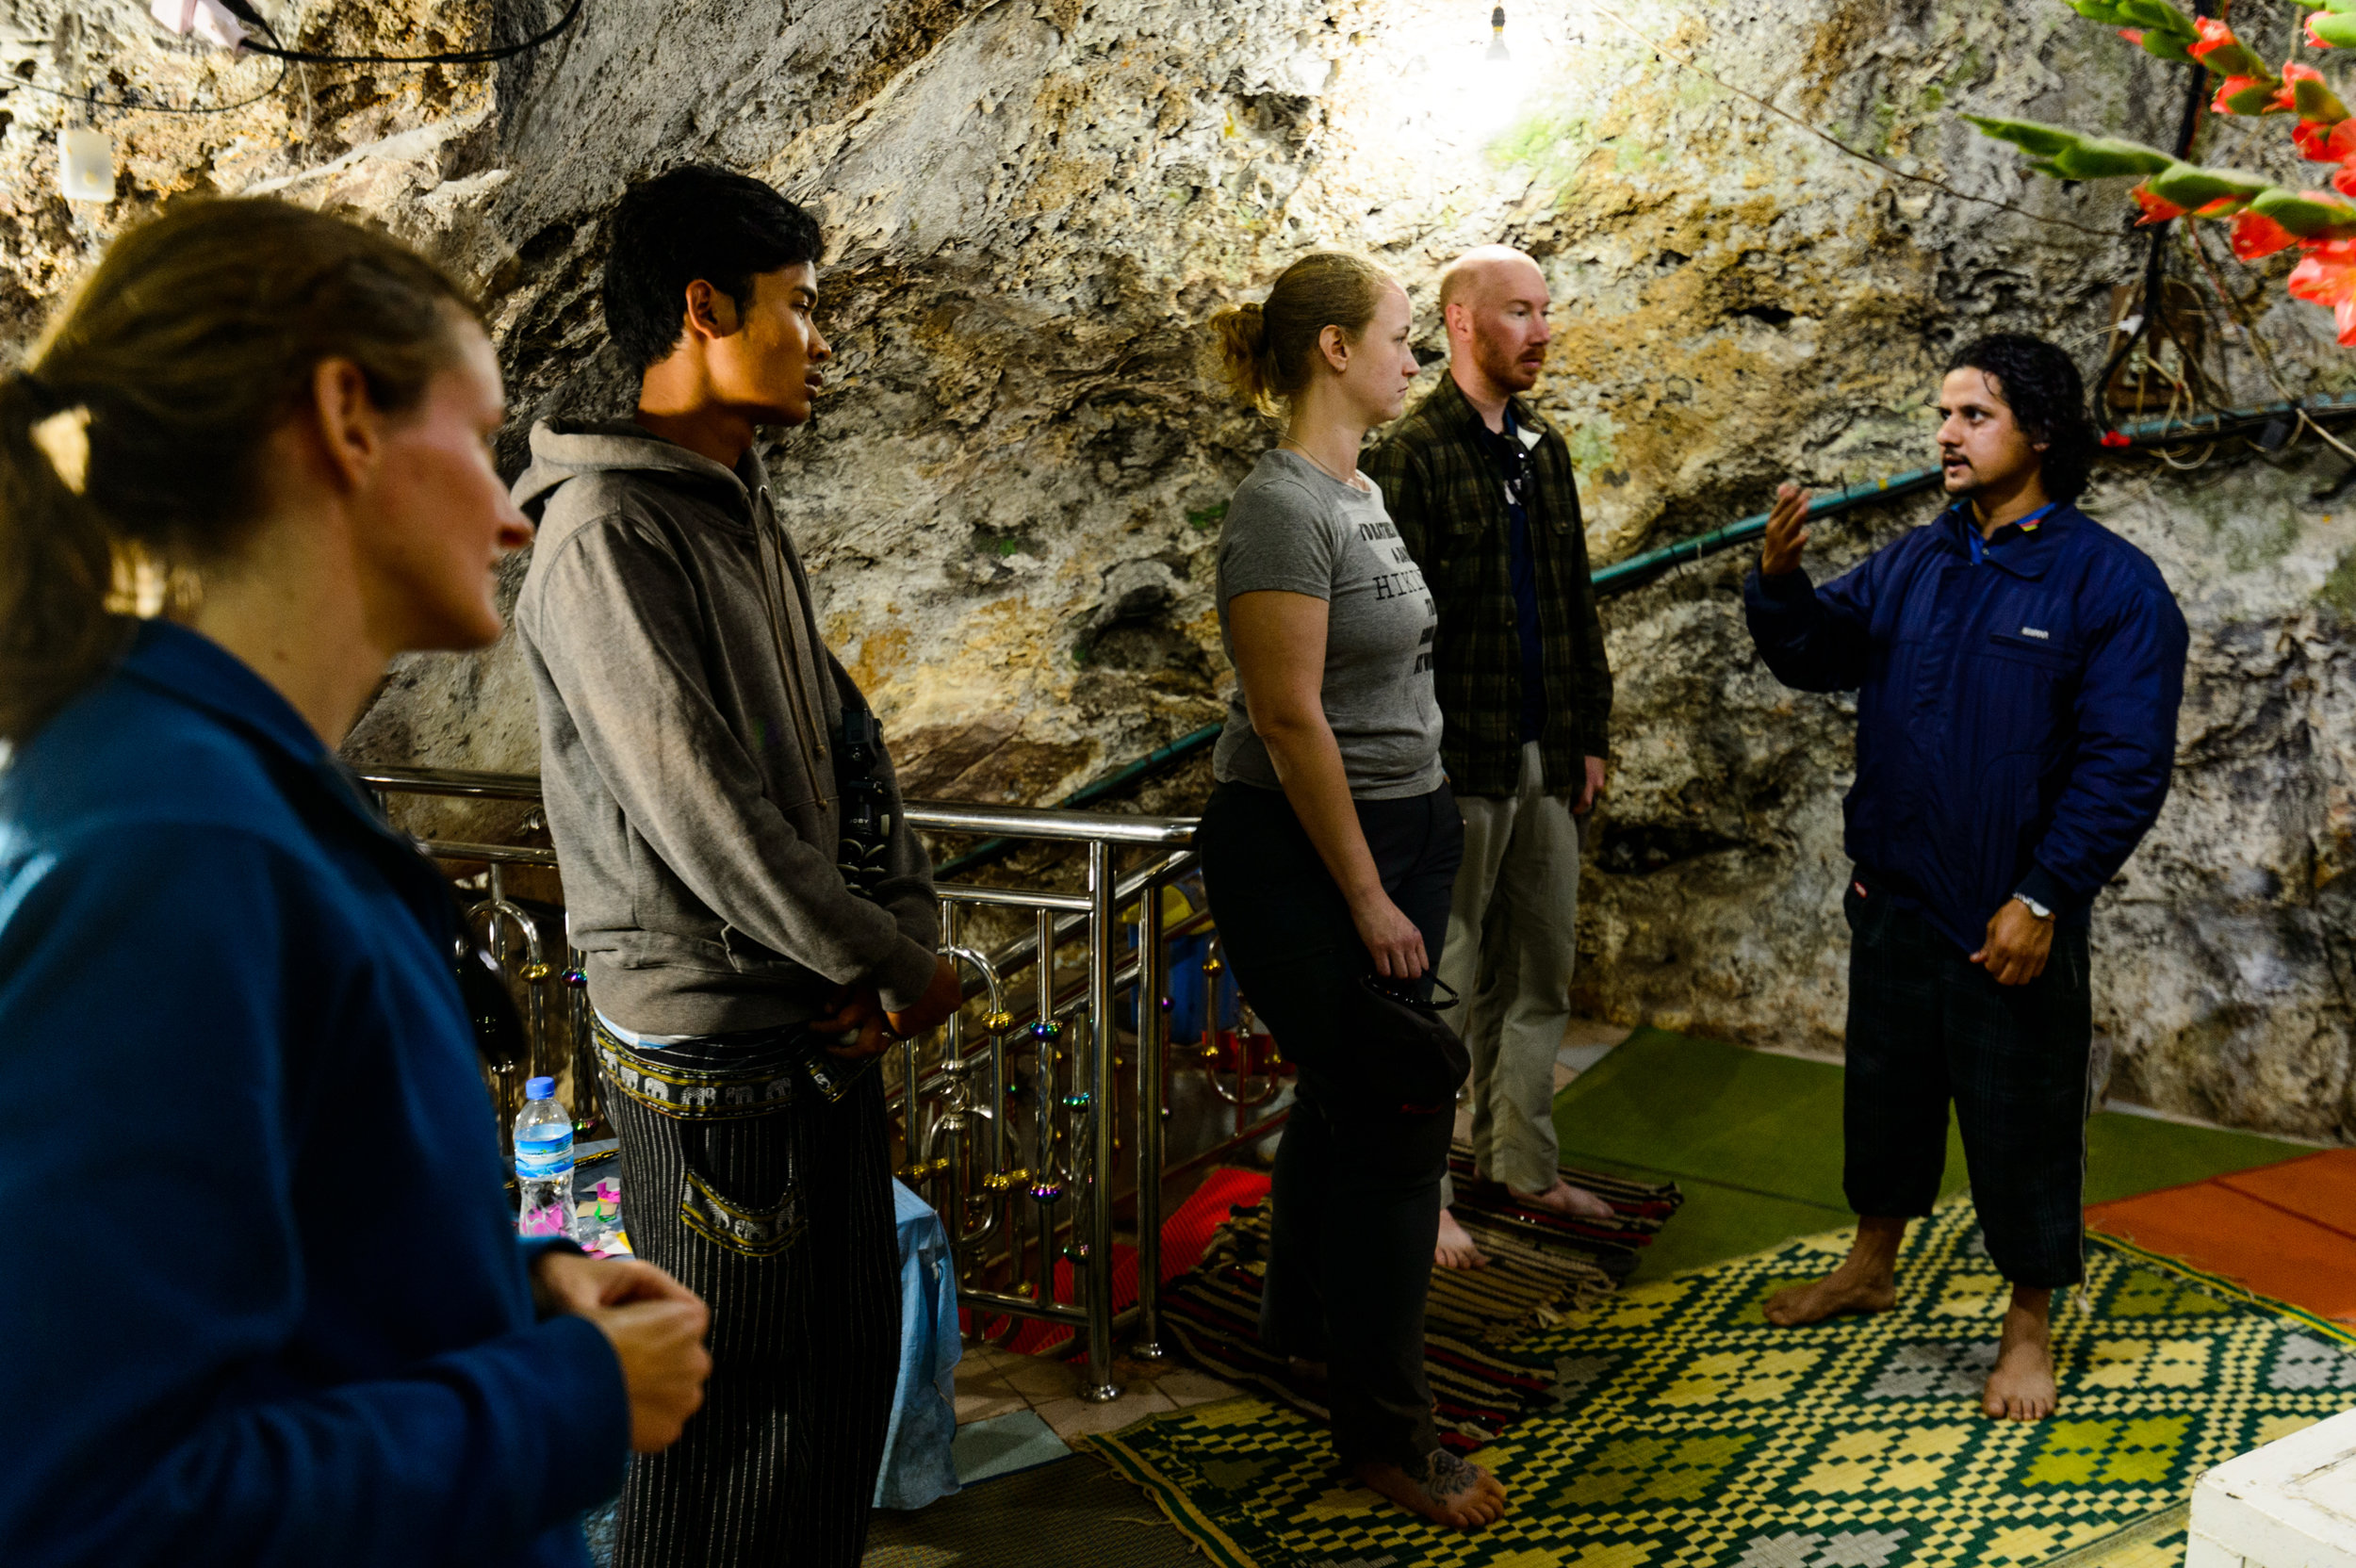 Sounar giving us the low-down on this specific shrine's significance as he did throughout the entire underground tour.